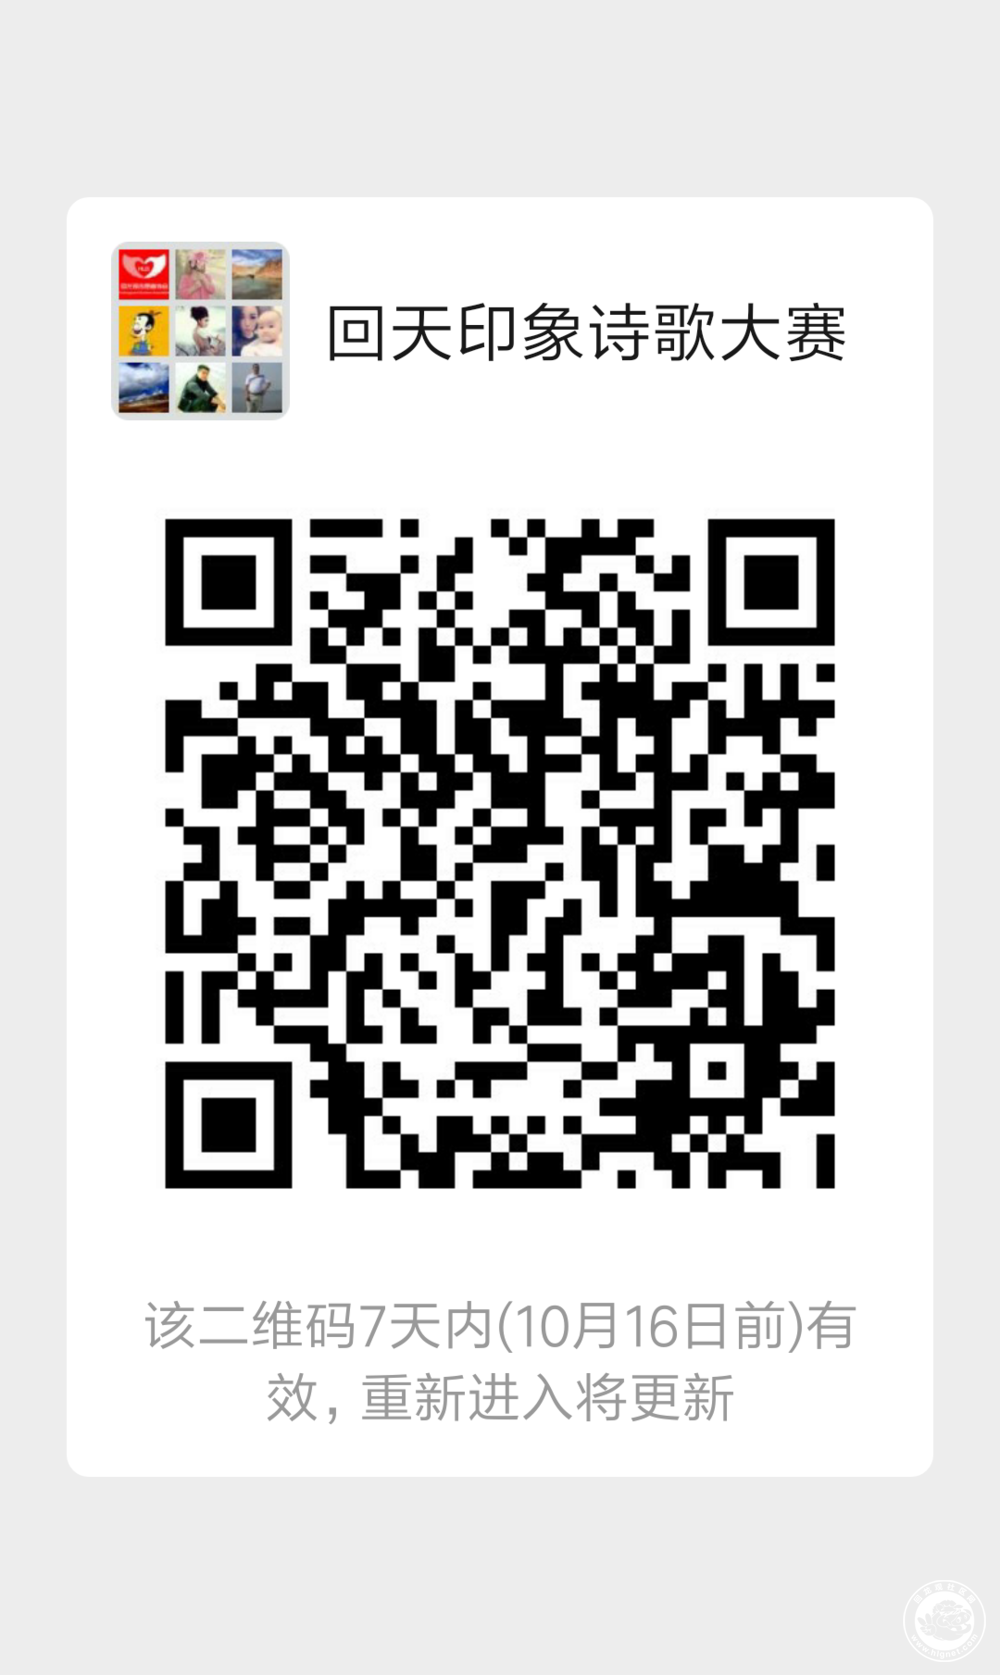 mmqrcode1570599631929.png